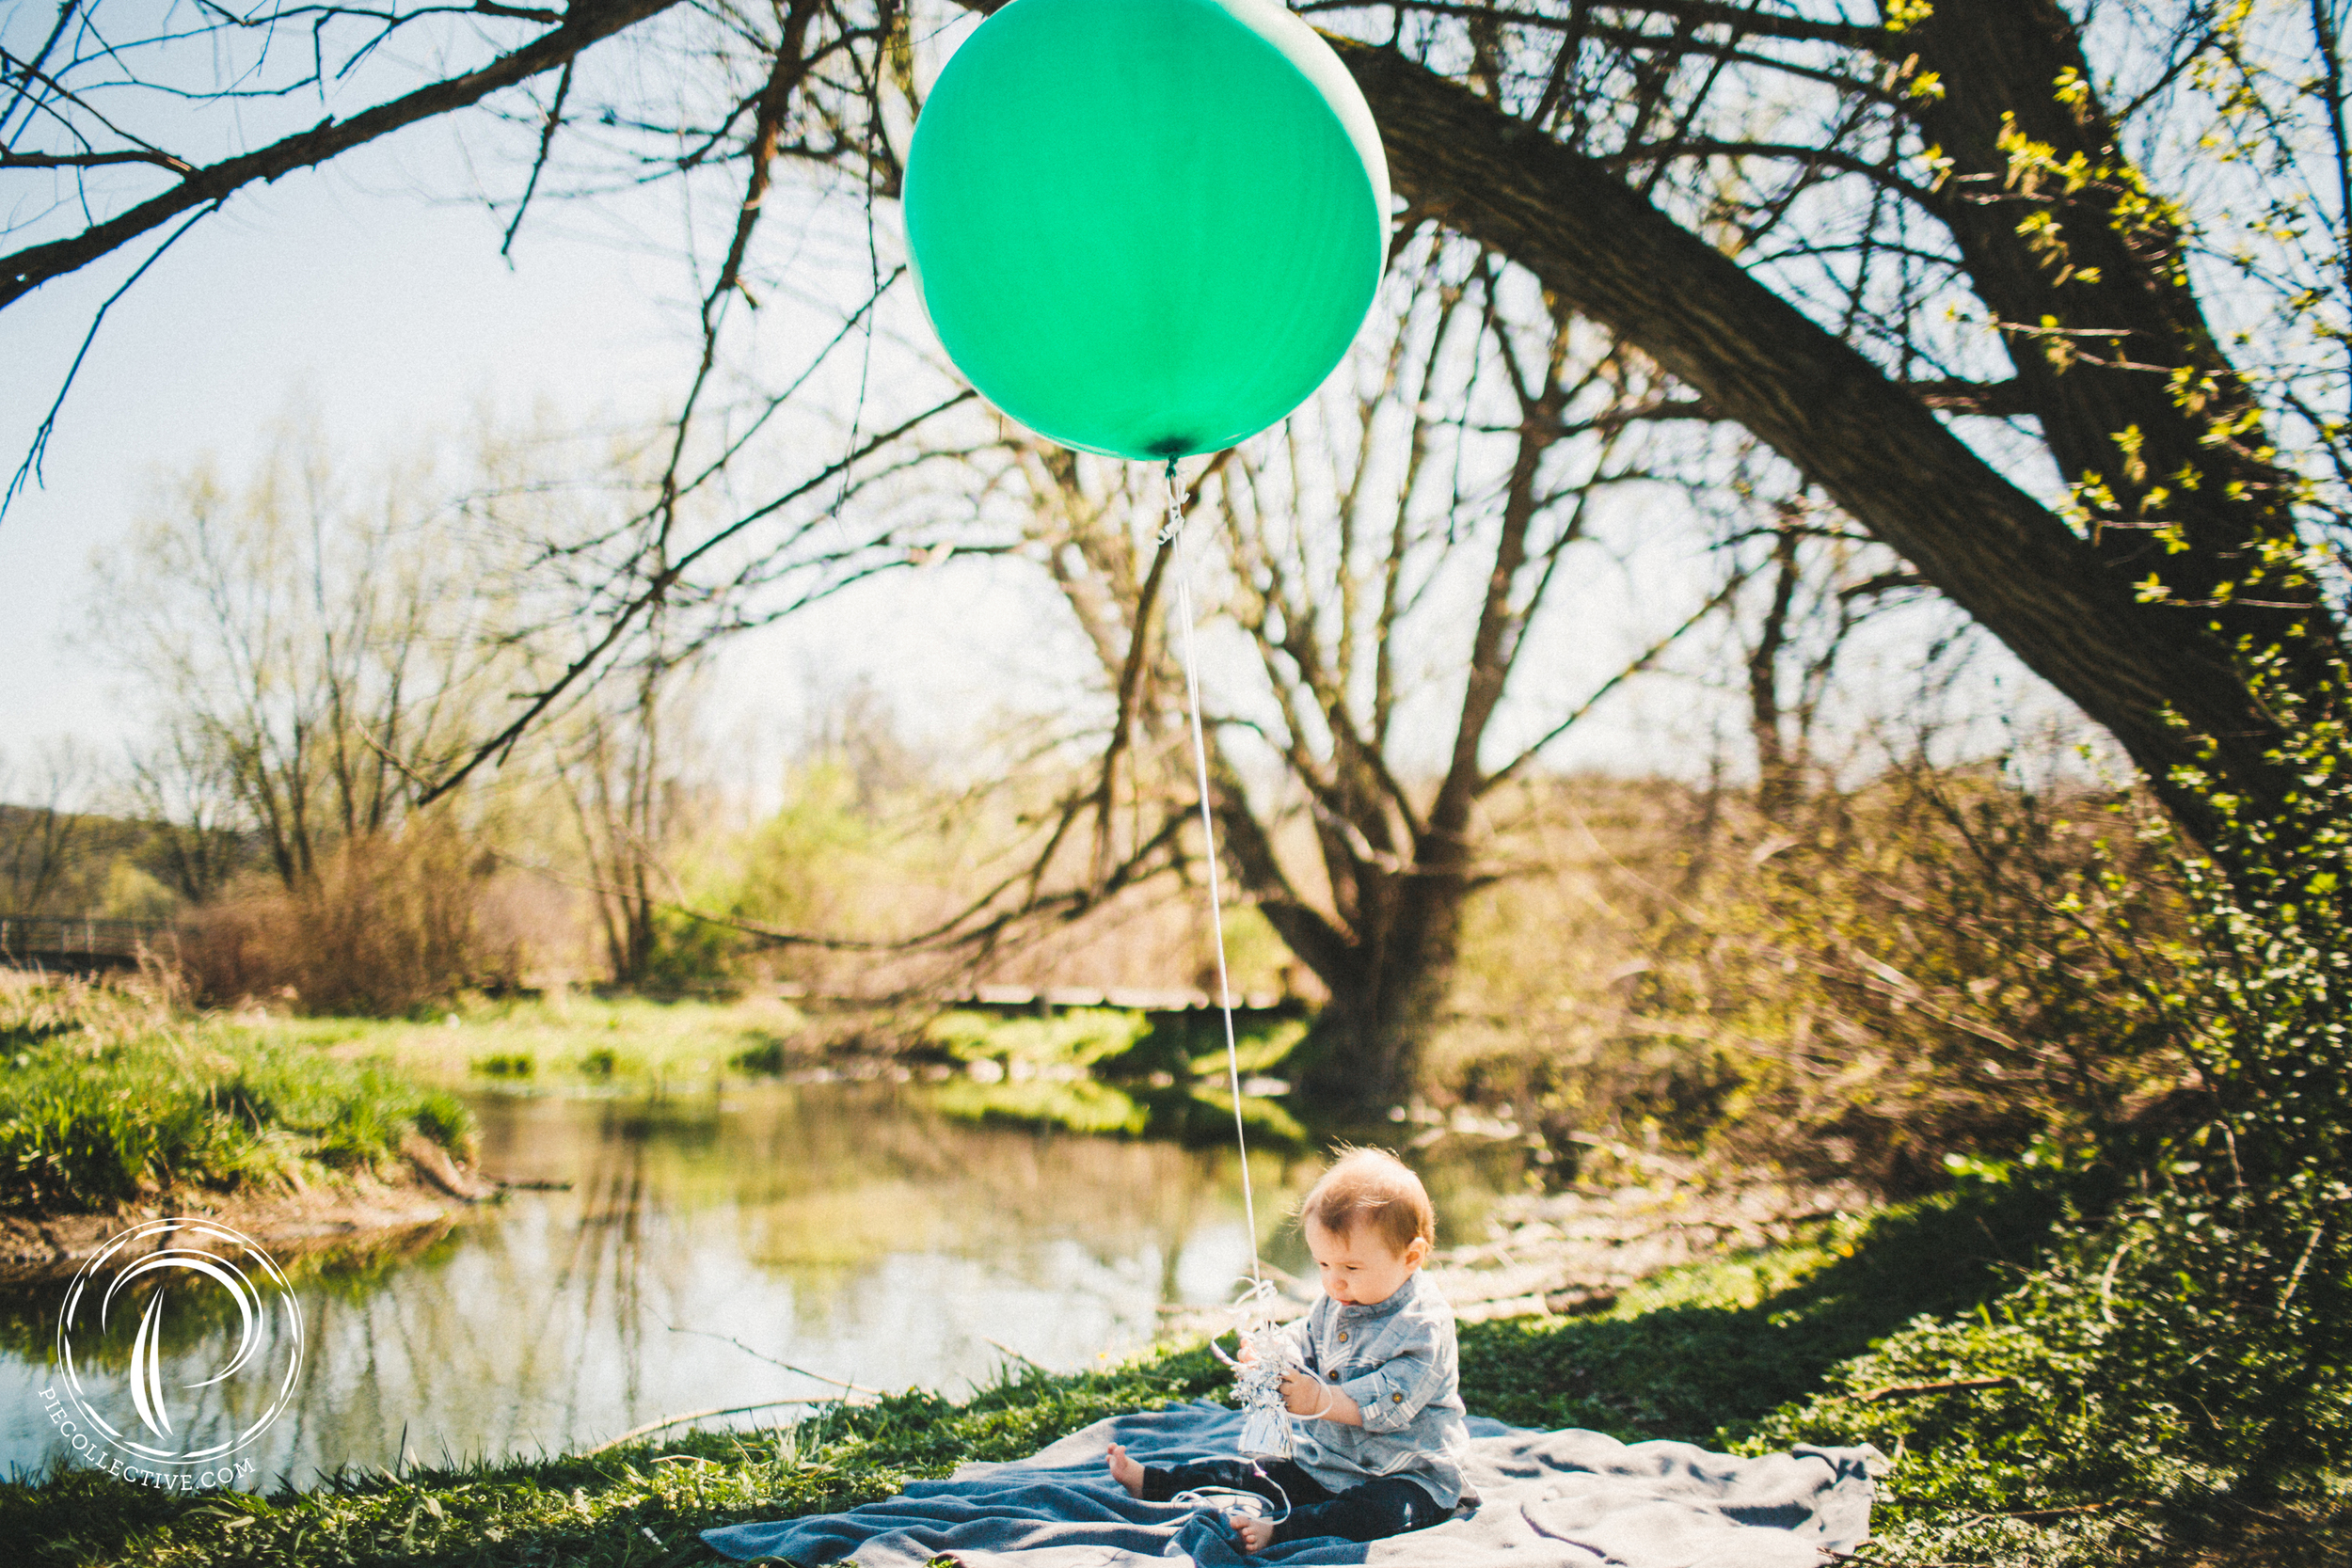 A boy and his green balloon...